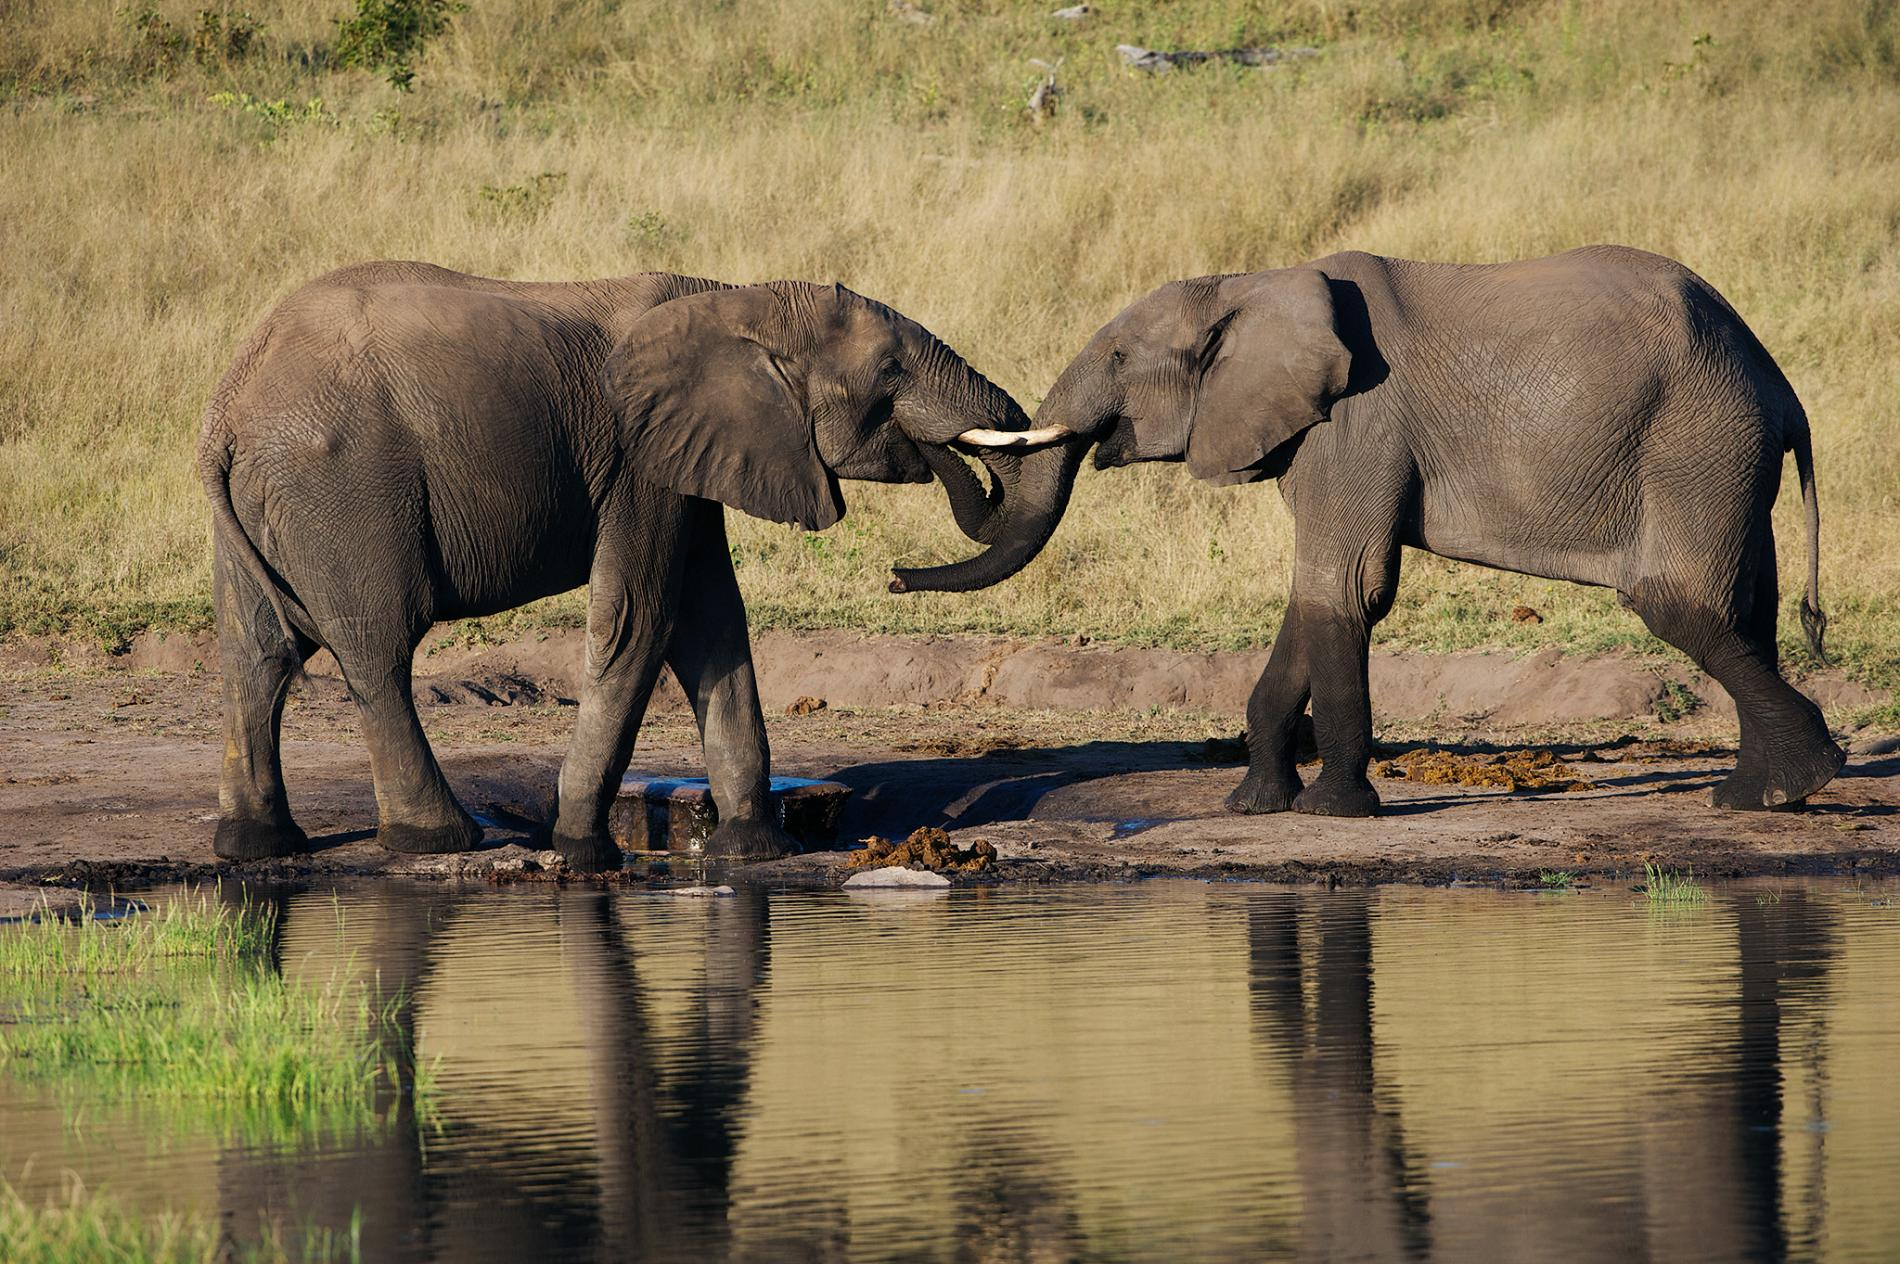 Trump pentagon nominee hunted and killed elephants in